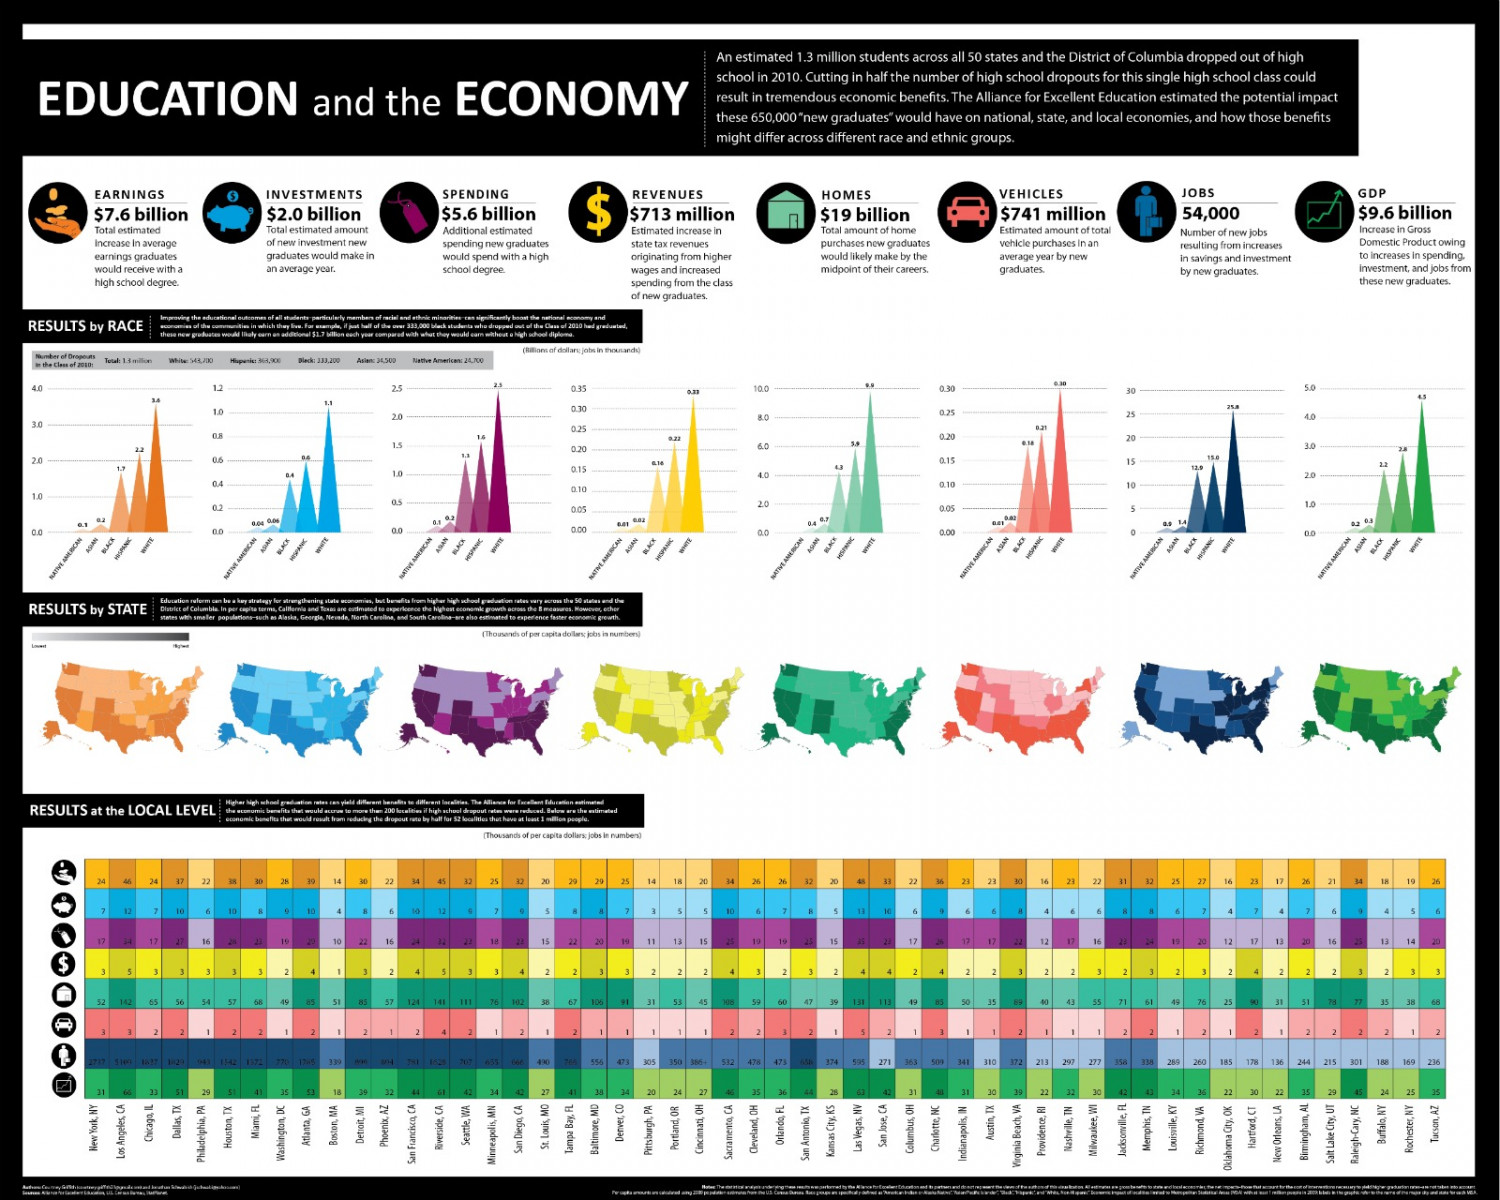 Education and the Economy Infographic